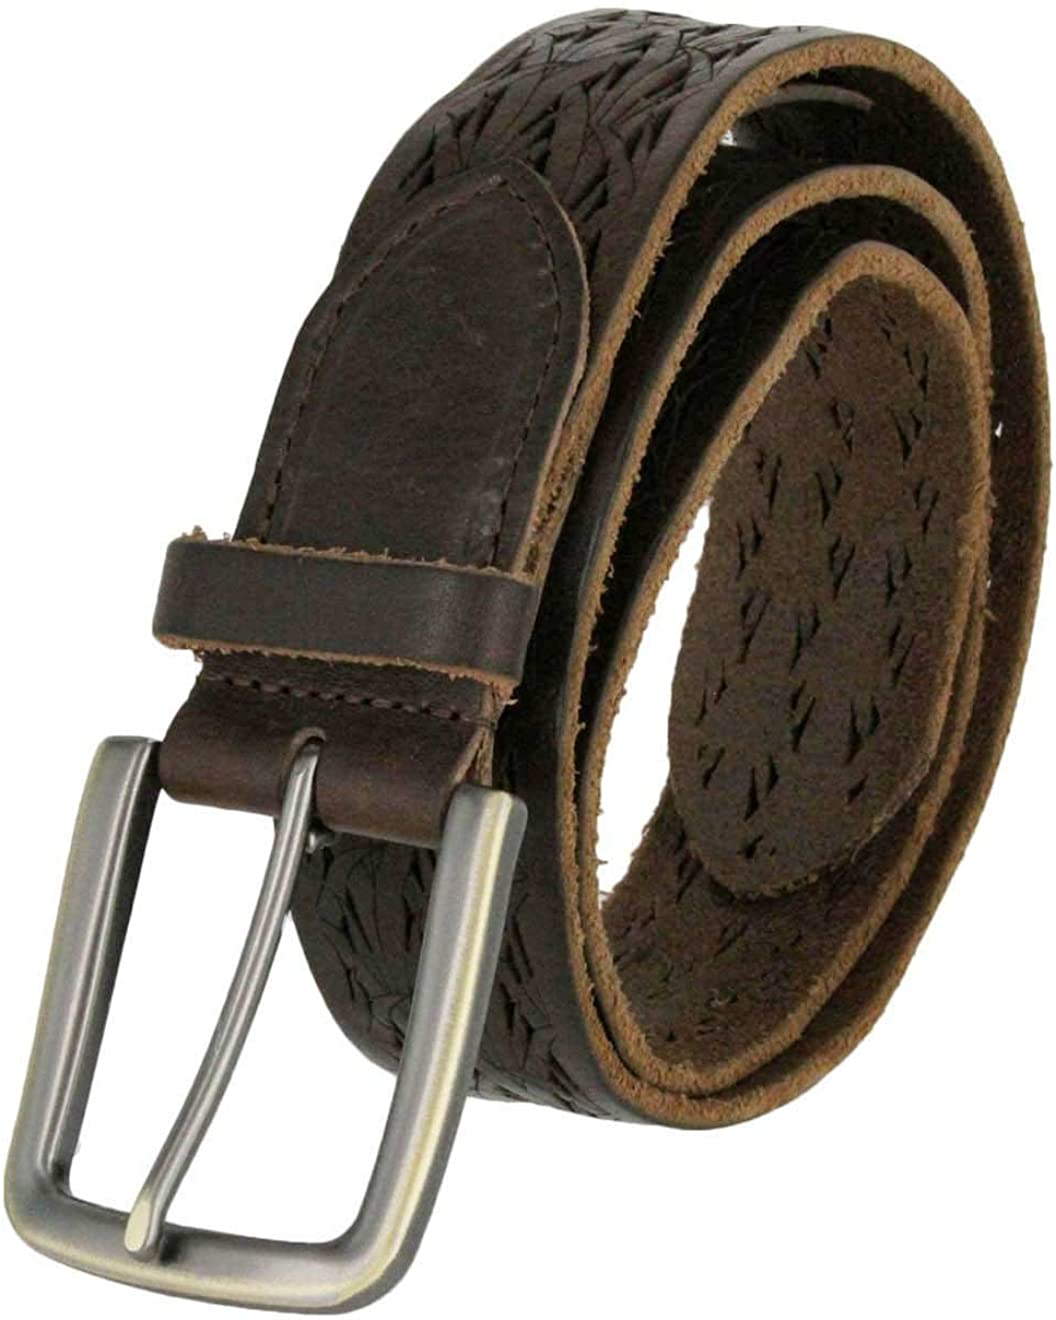 38mm for Men Tulliani Meadow Tooled Leather Belt 1-1//2